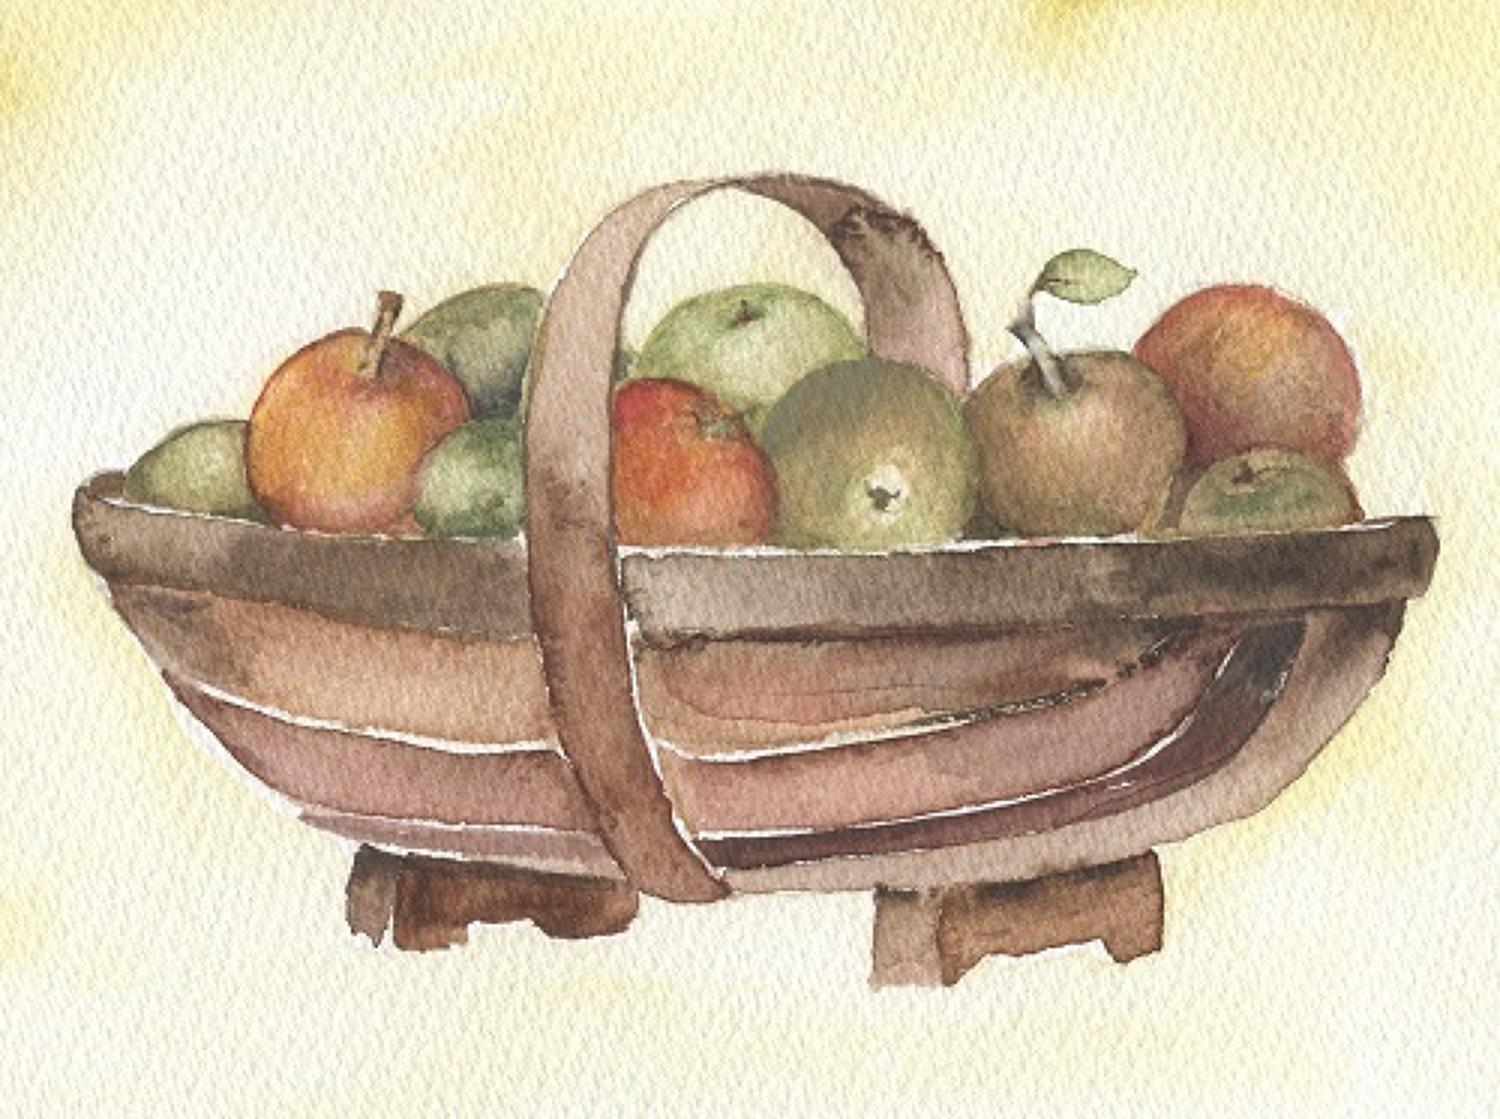 Trug of apples